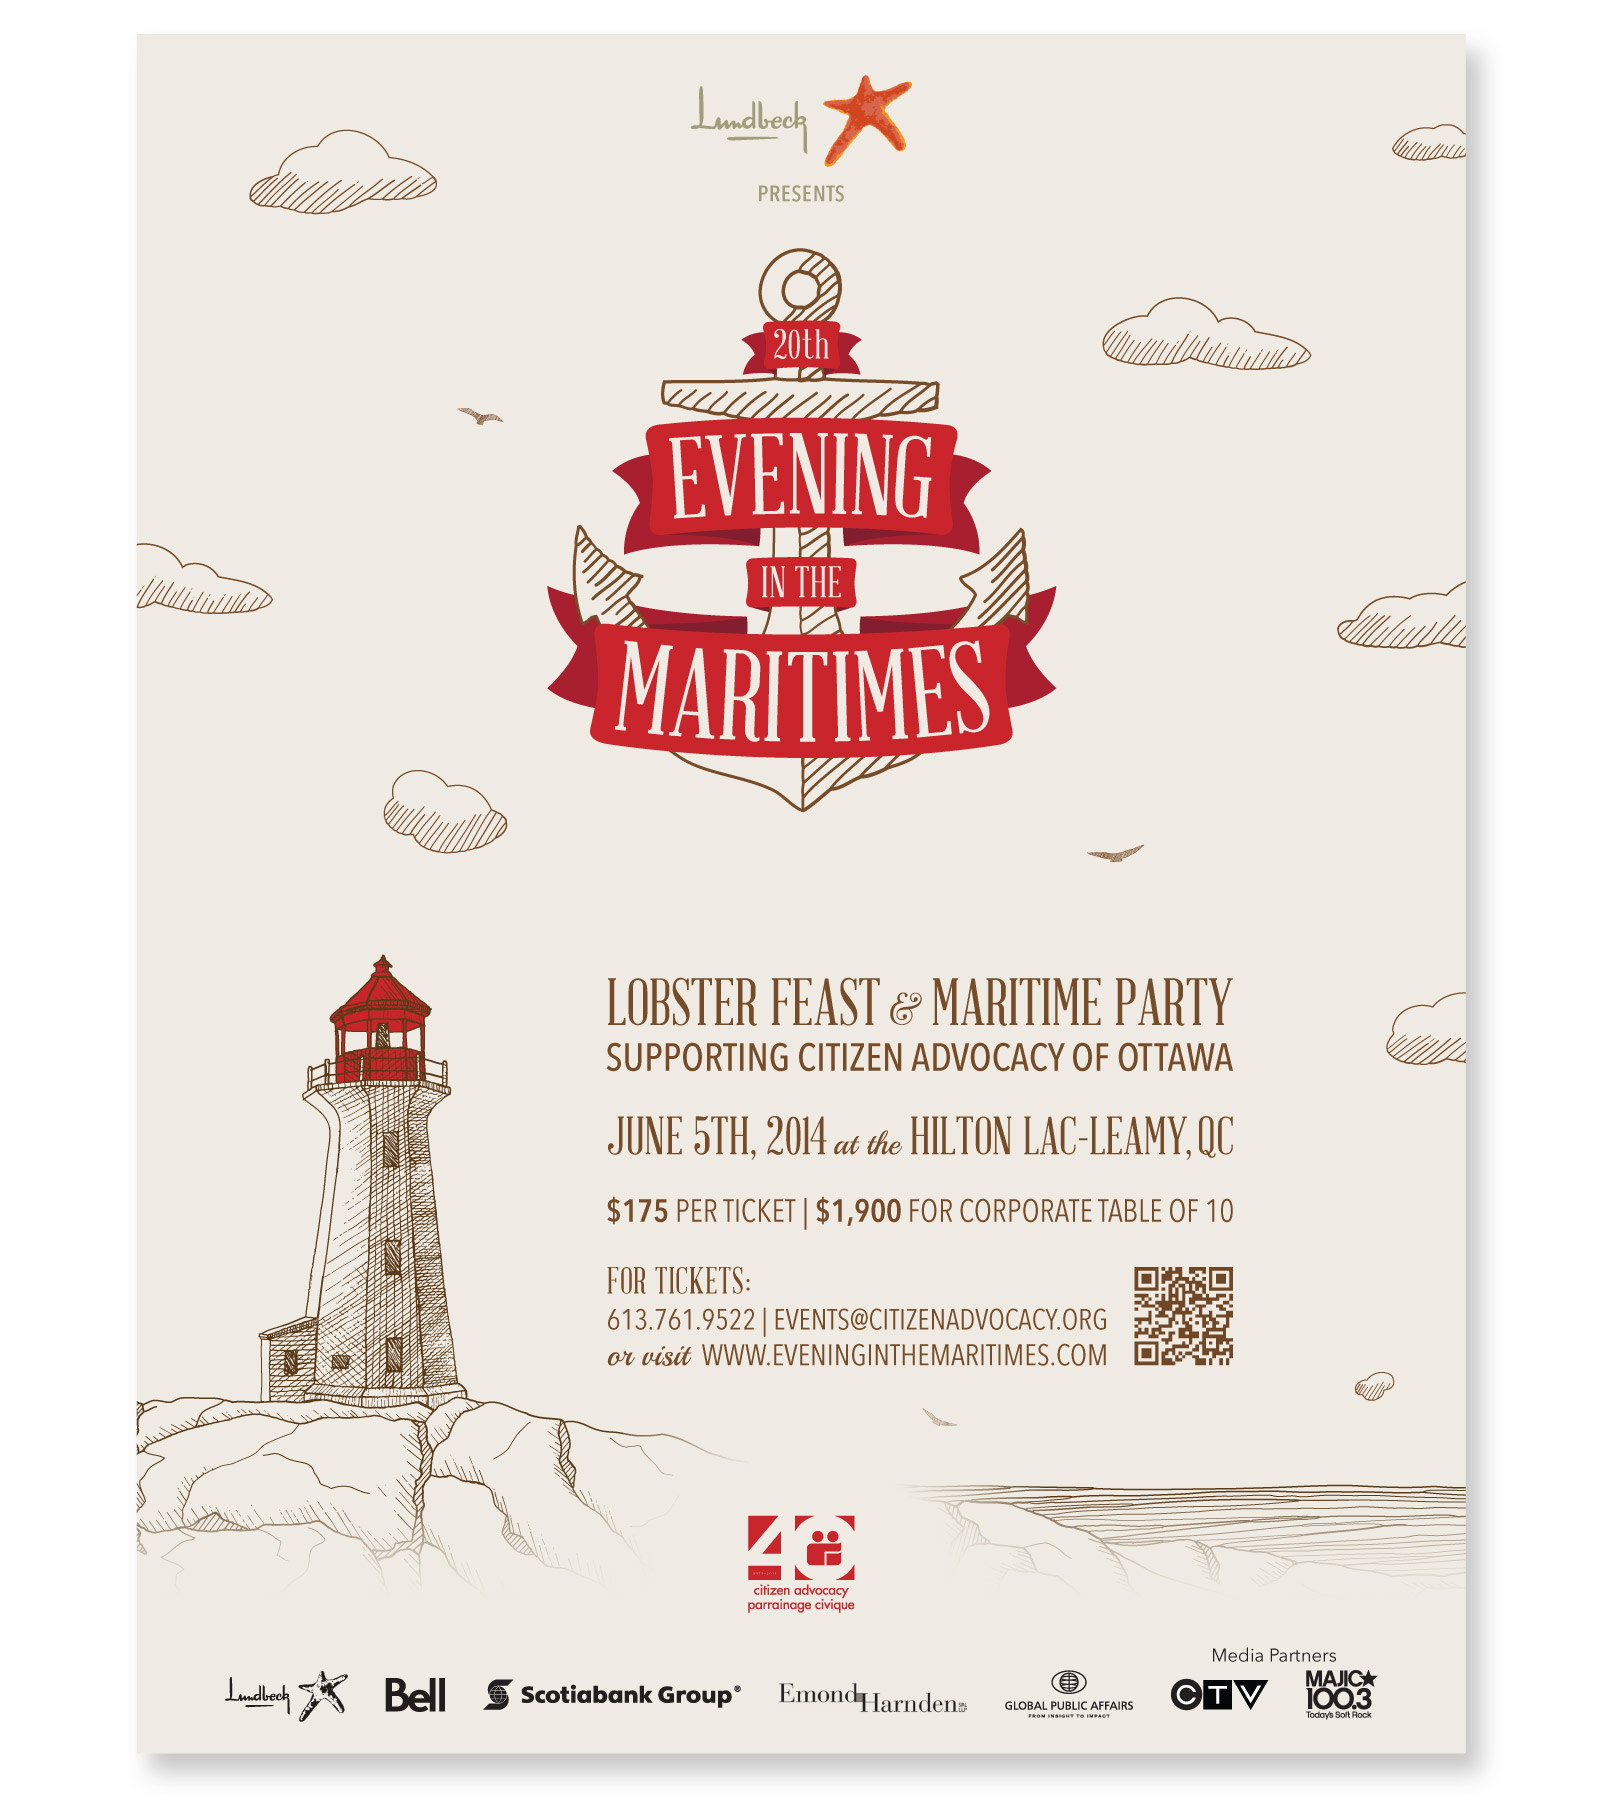 Evening in the Maritimes Poster